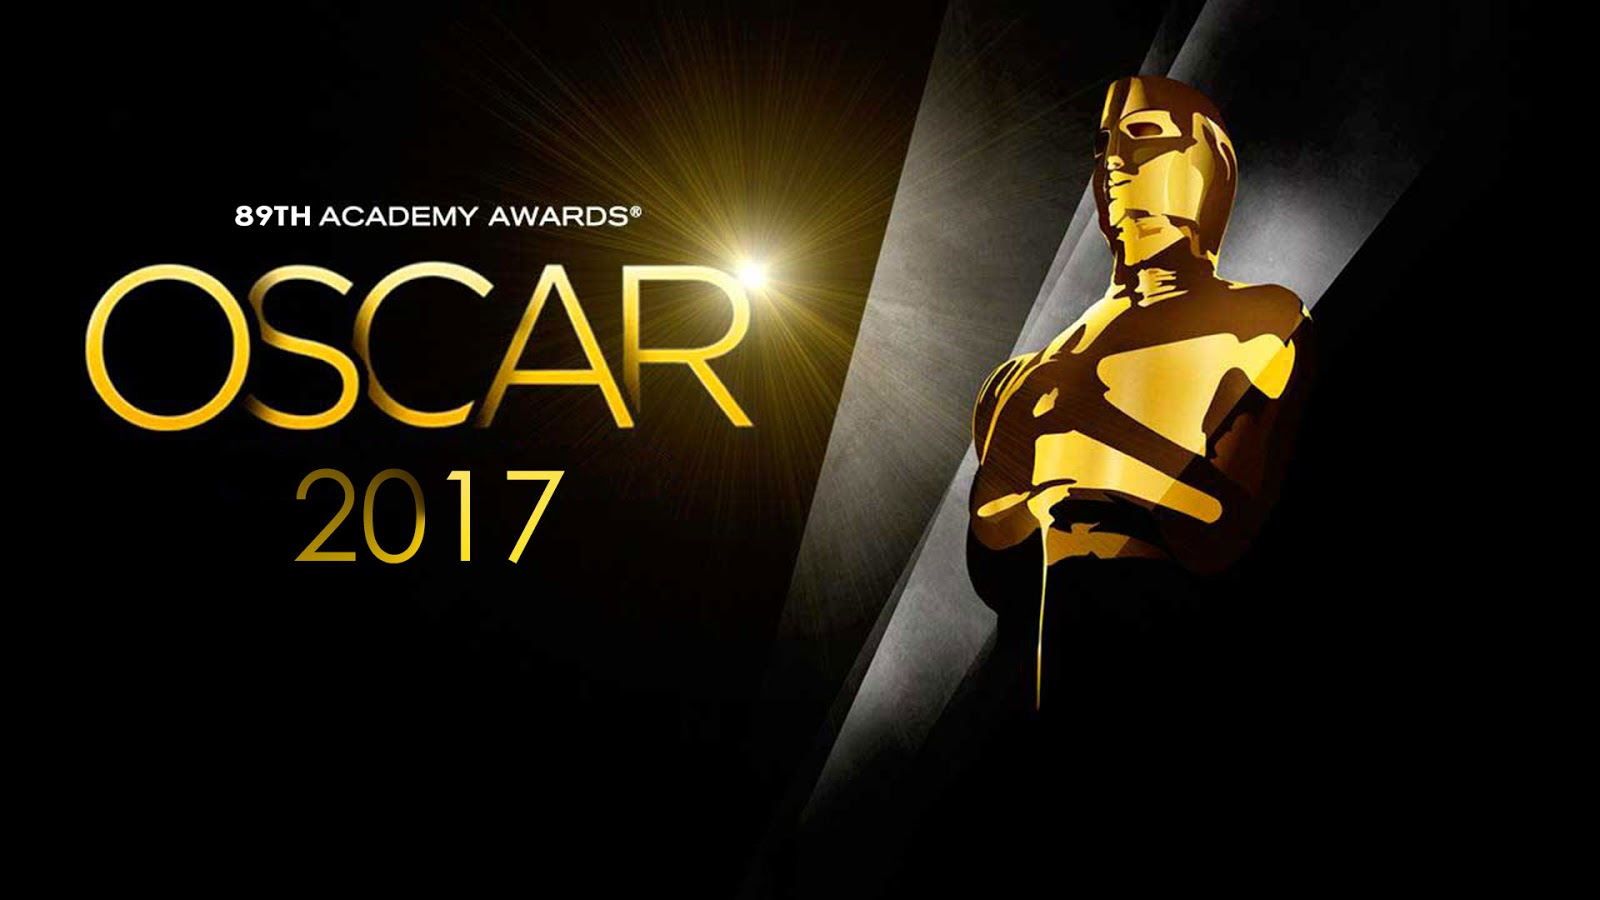 2017 Oscars nominations 89th Academy Awards predictions